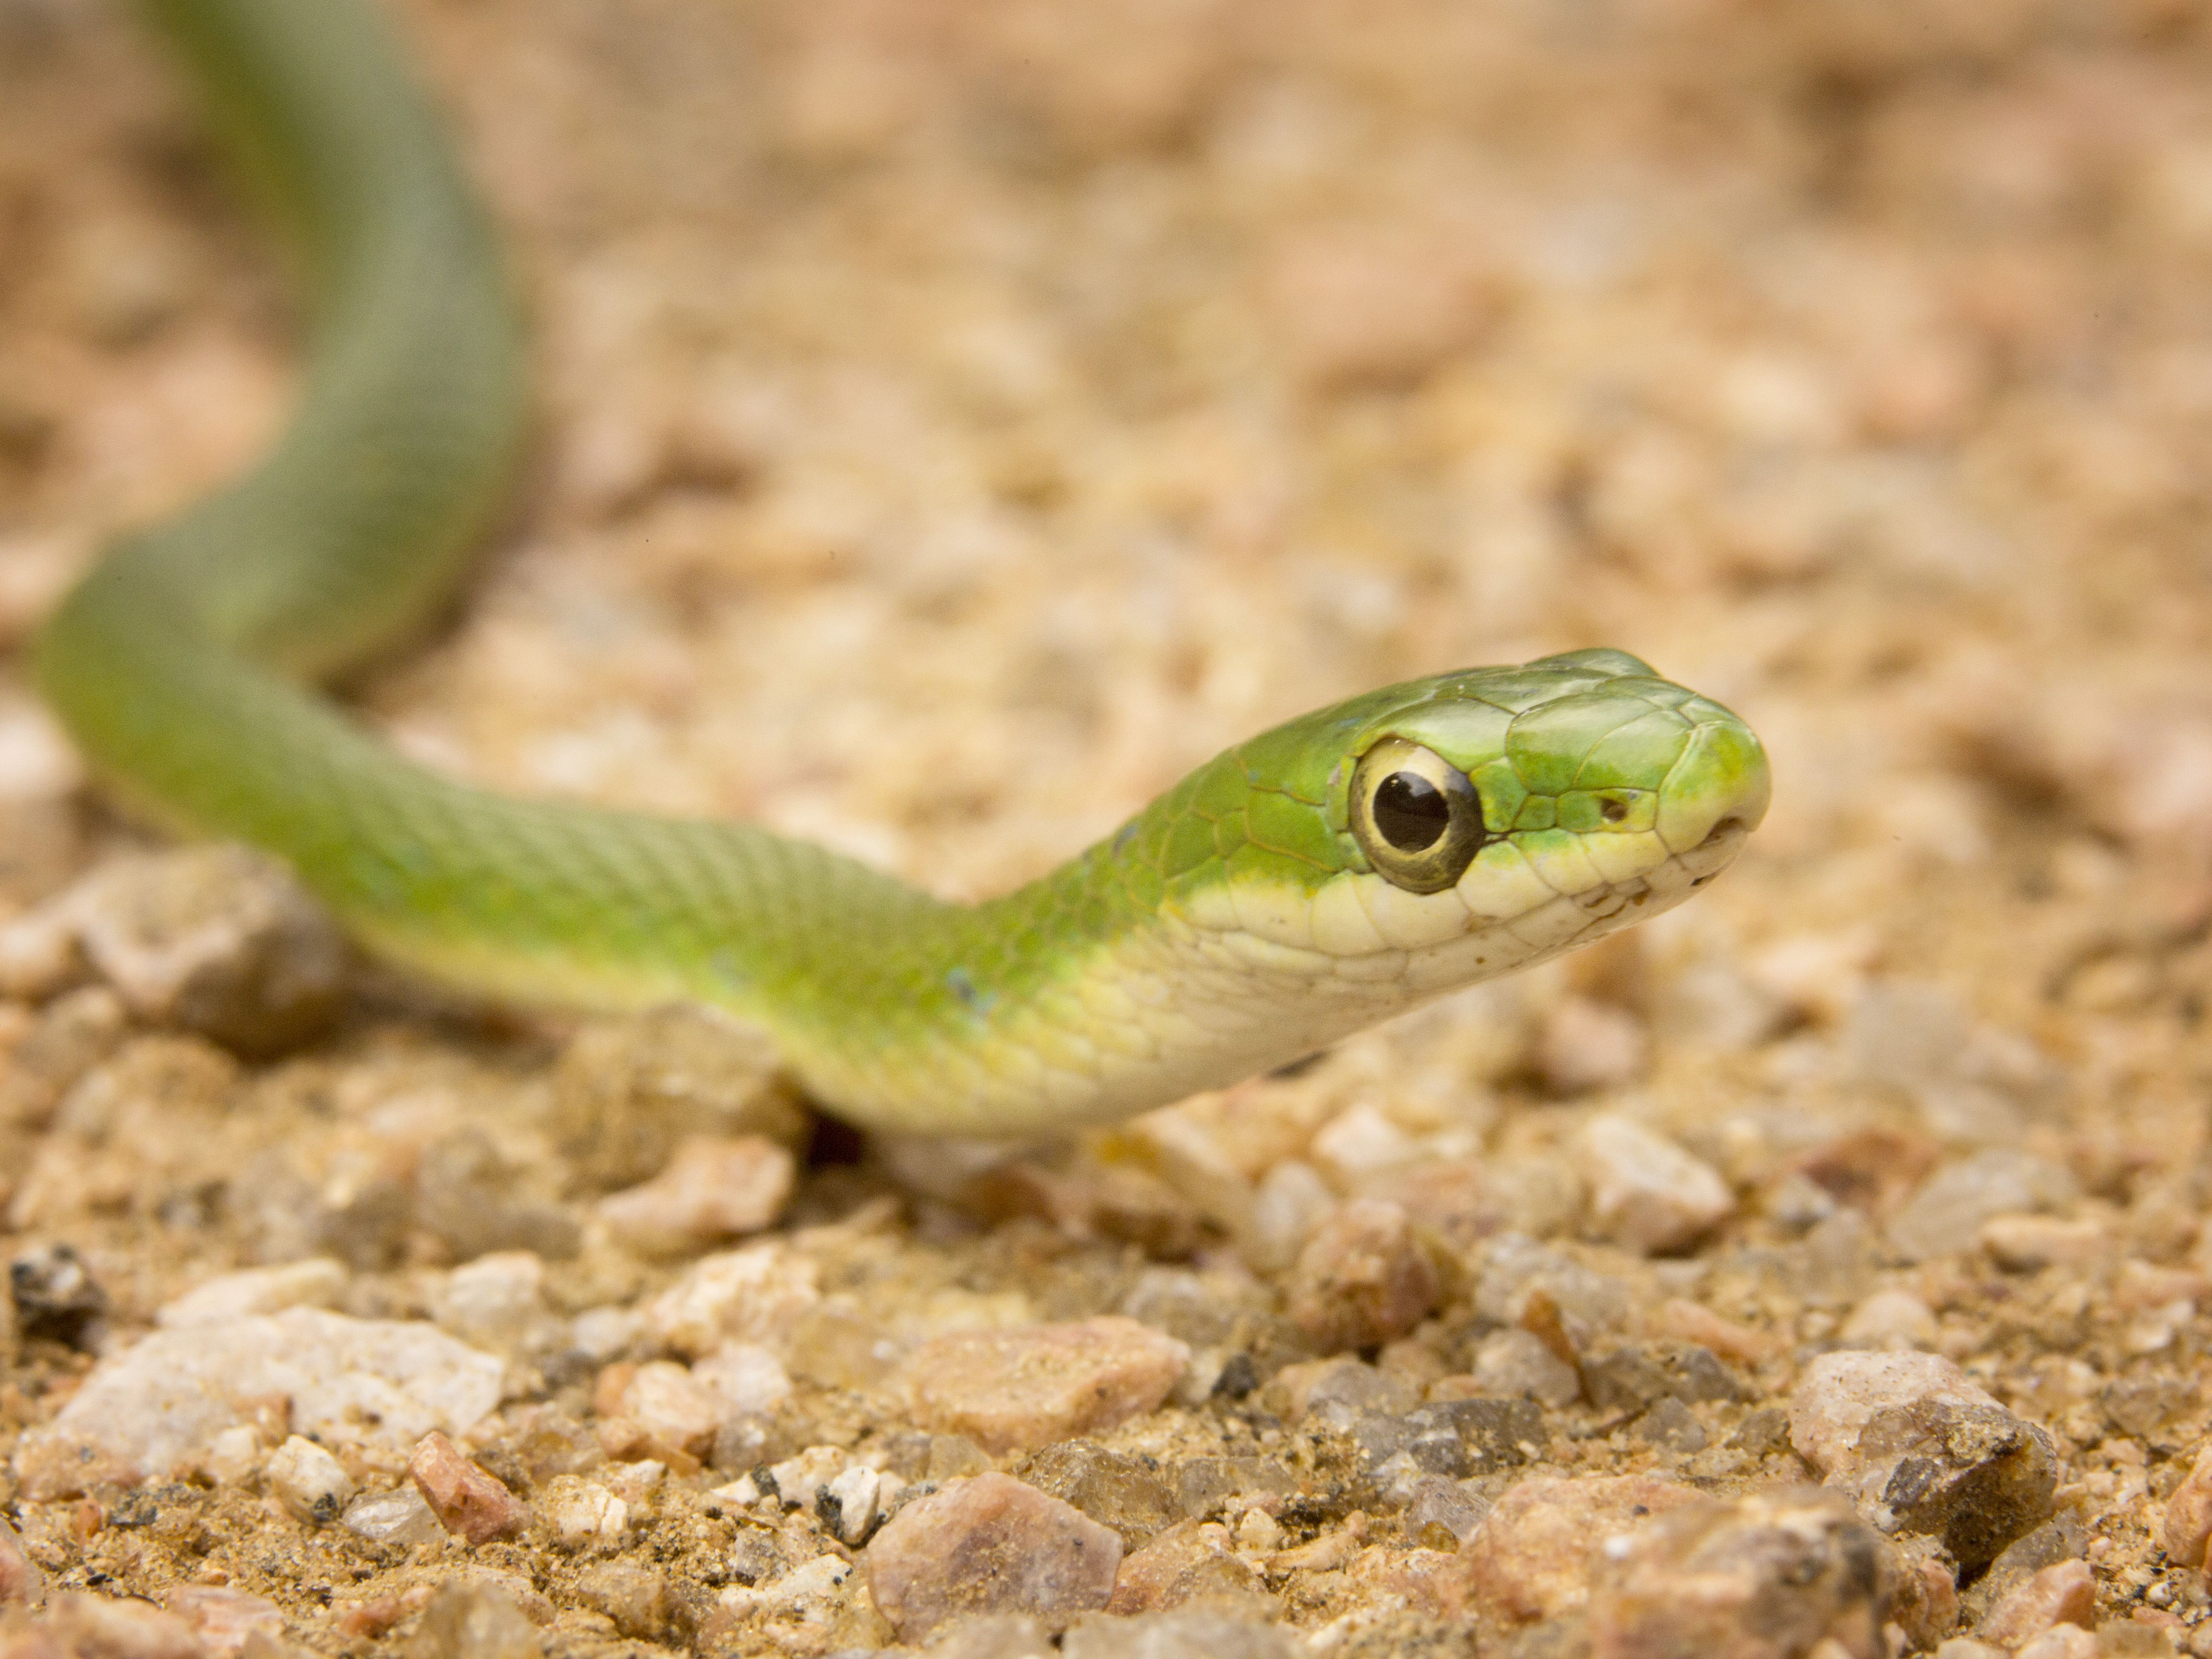 43 Names for Pet Snakes